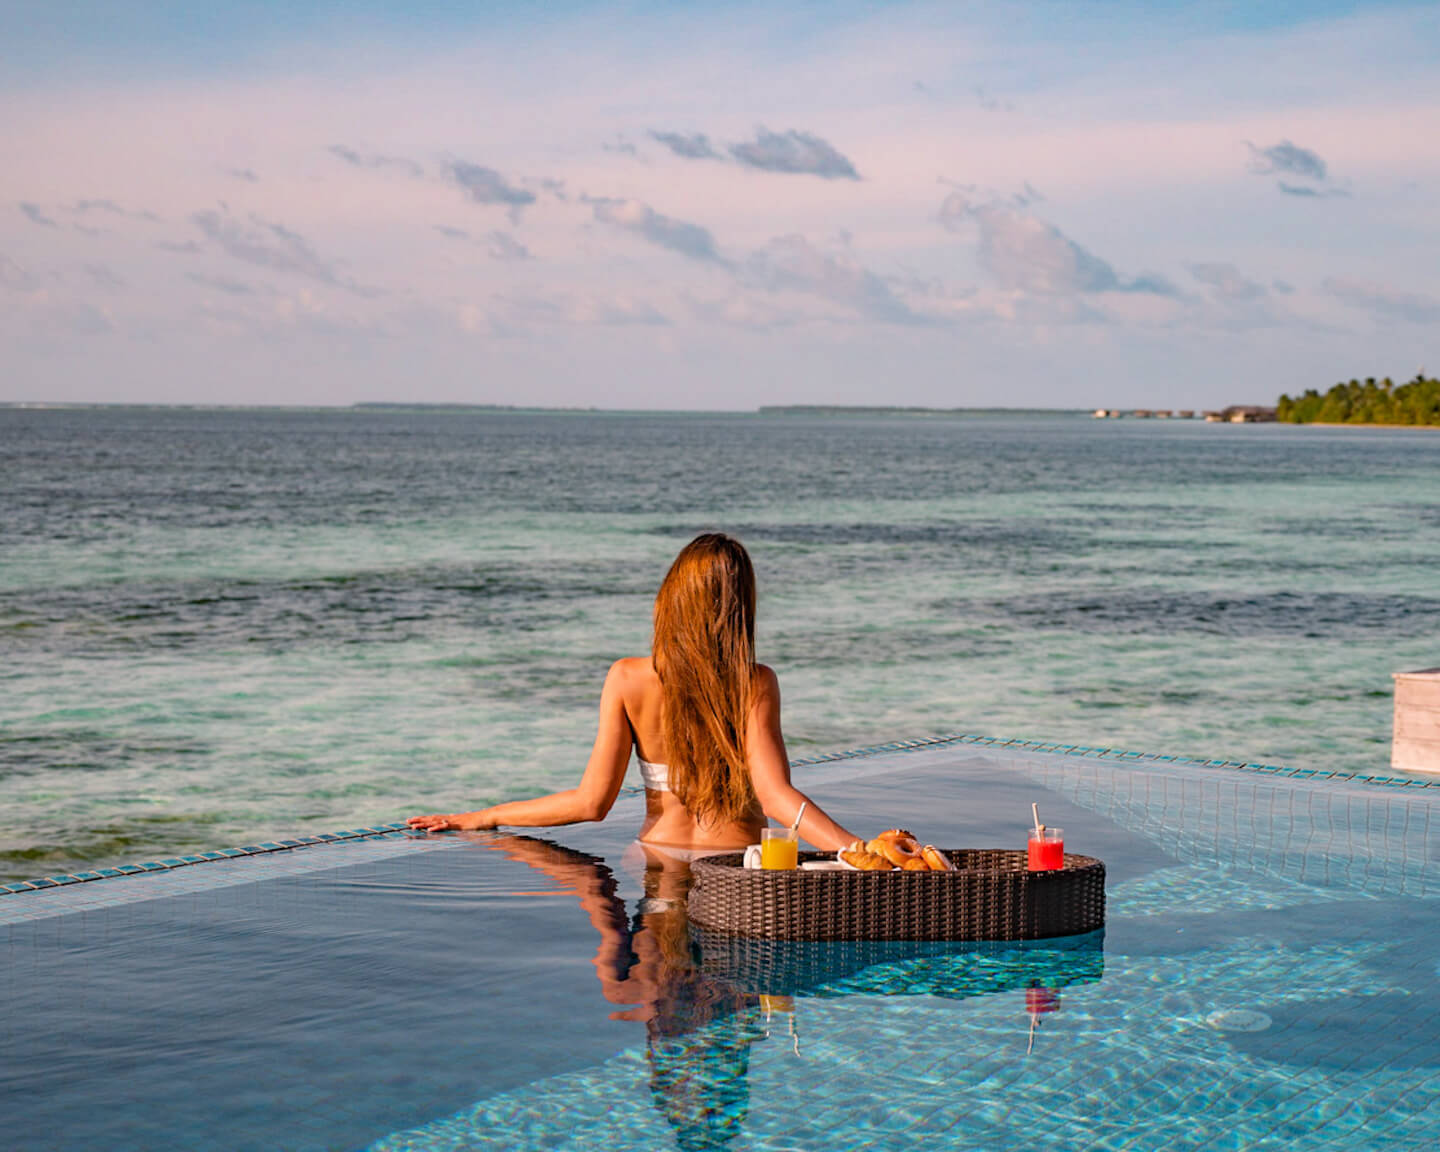 Floating breakfast in infinity pool over the blue lagoon in The Maldives